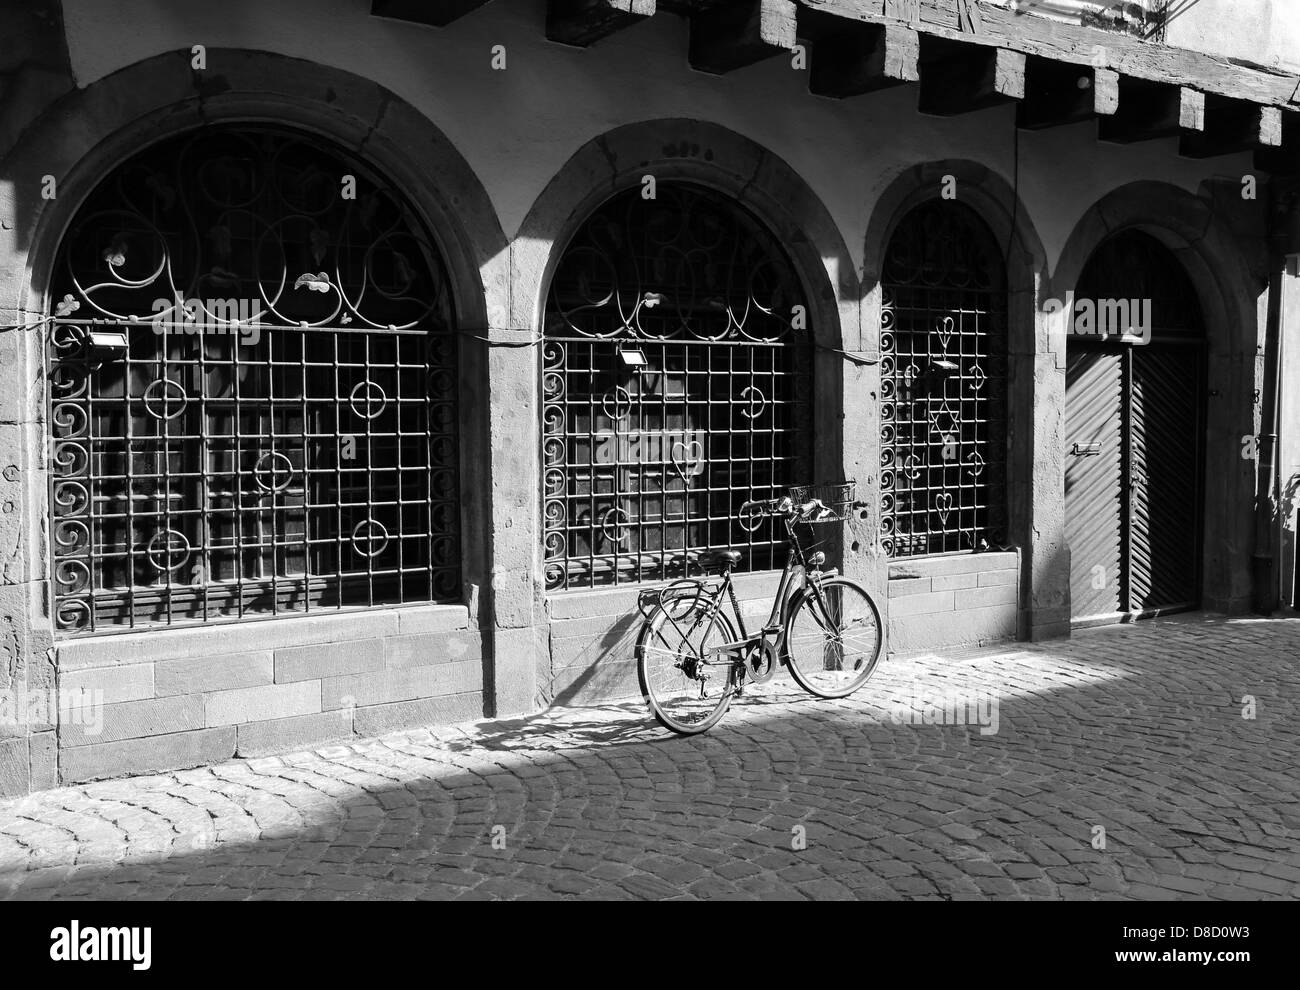 A bicycle parked by a house - Stock Image